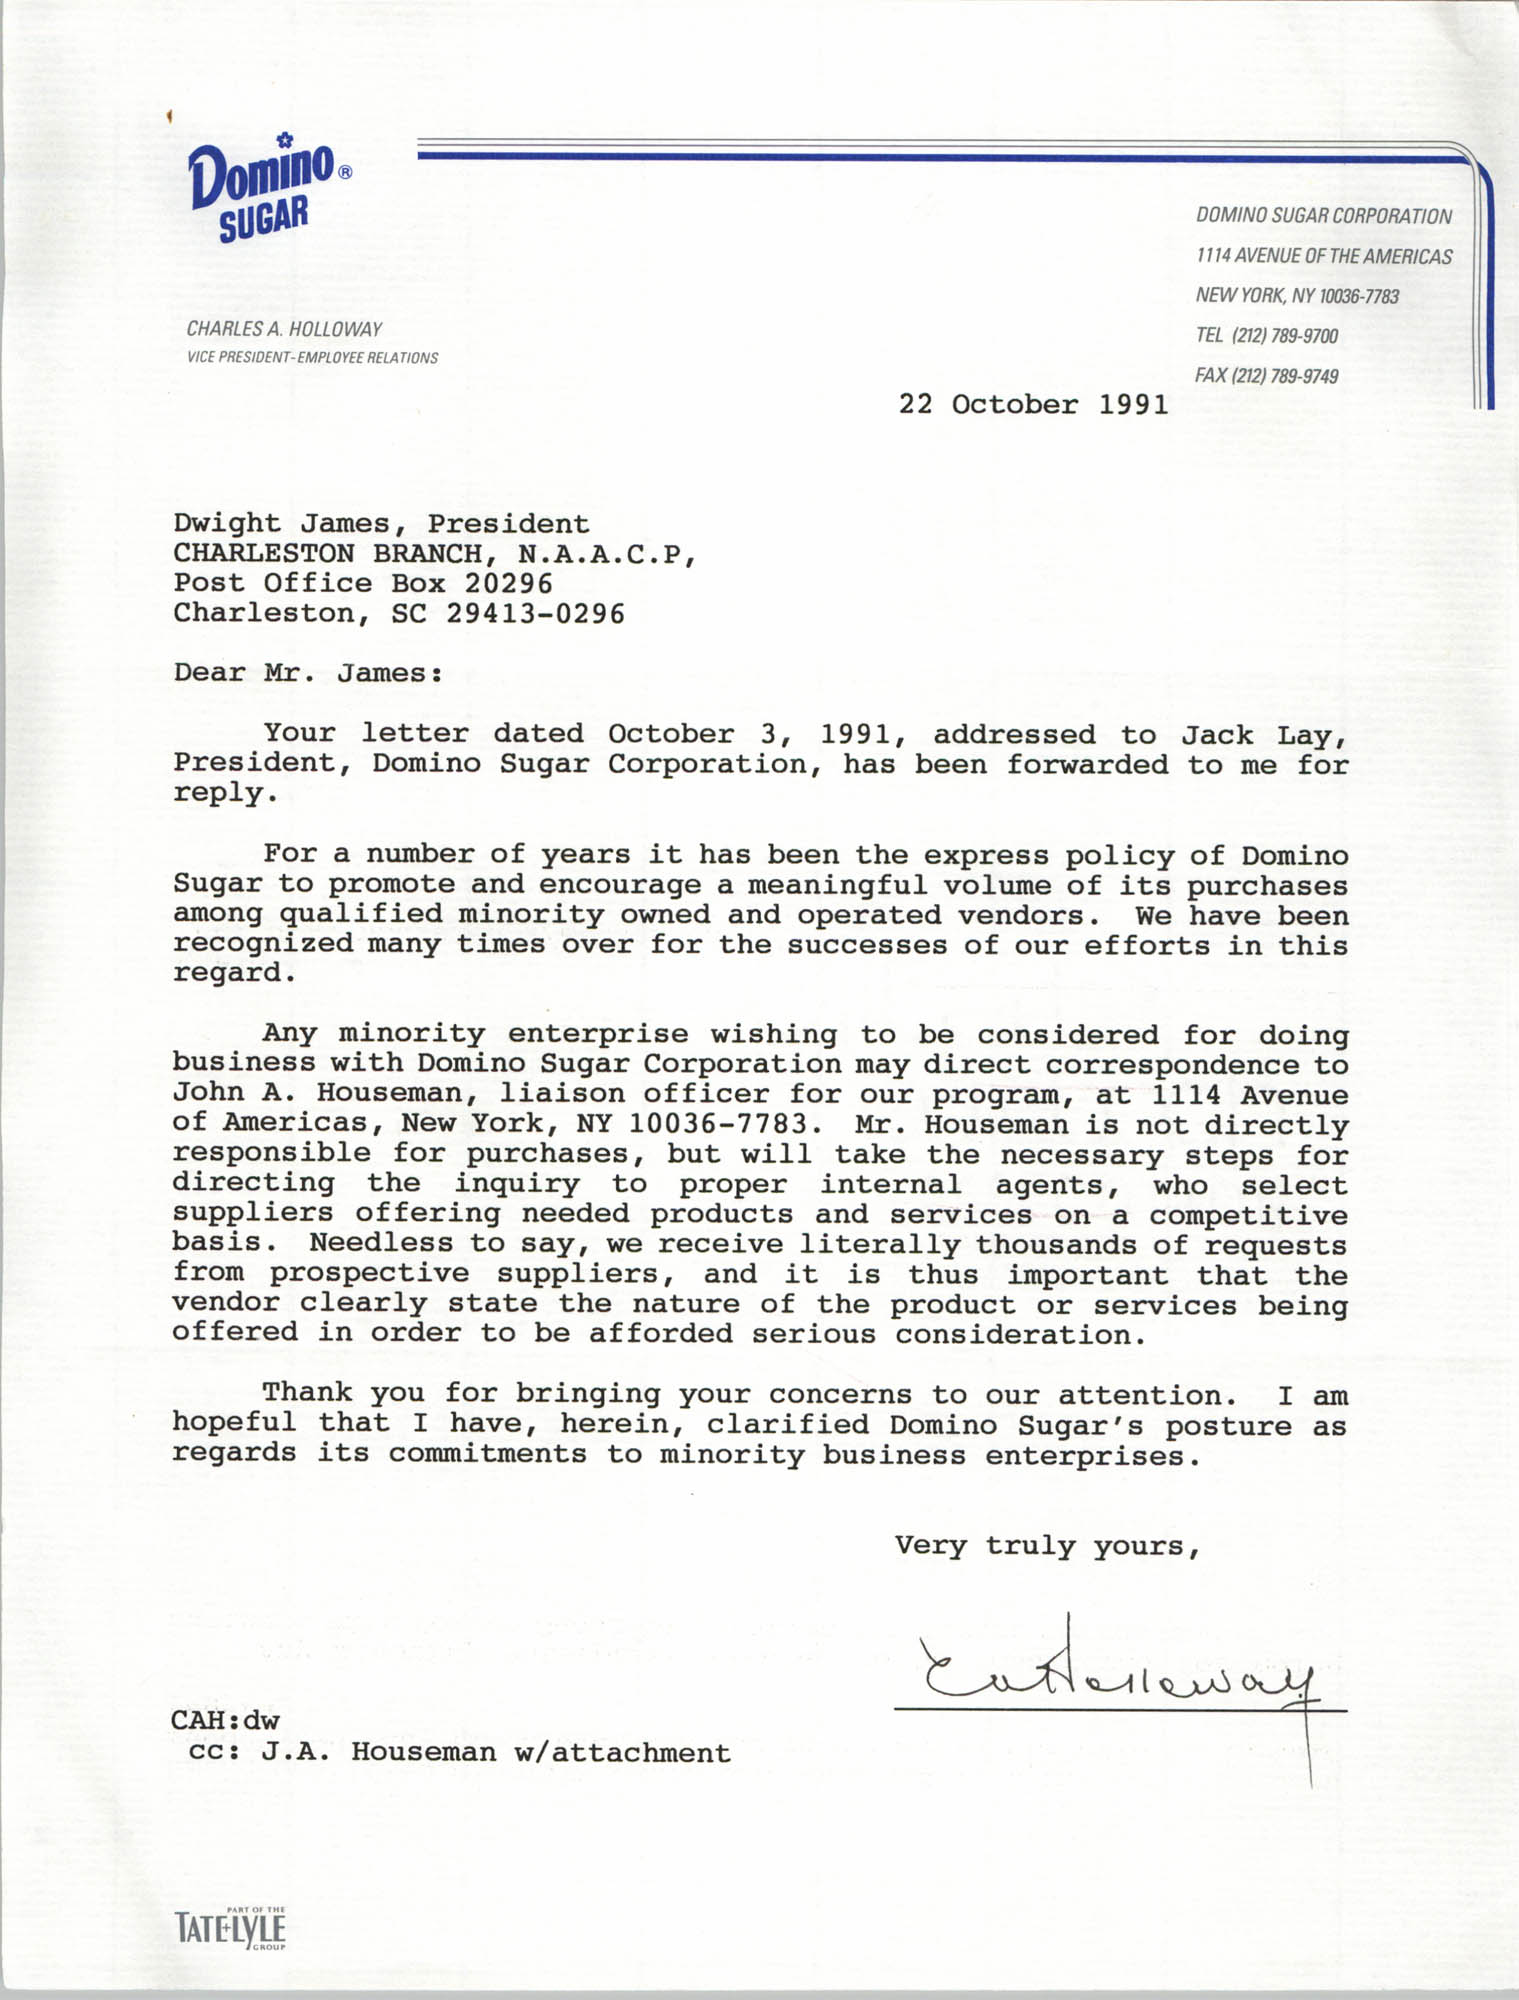 Letter from Charles A. Holloway to Dwight James, October 22, 1991